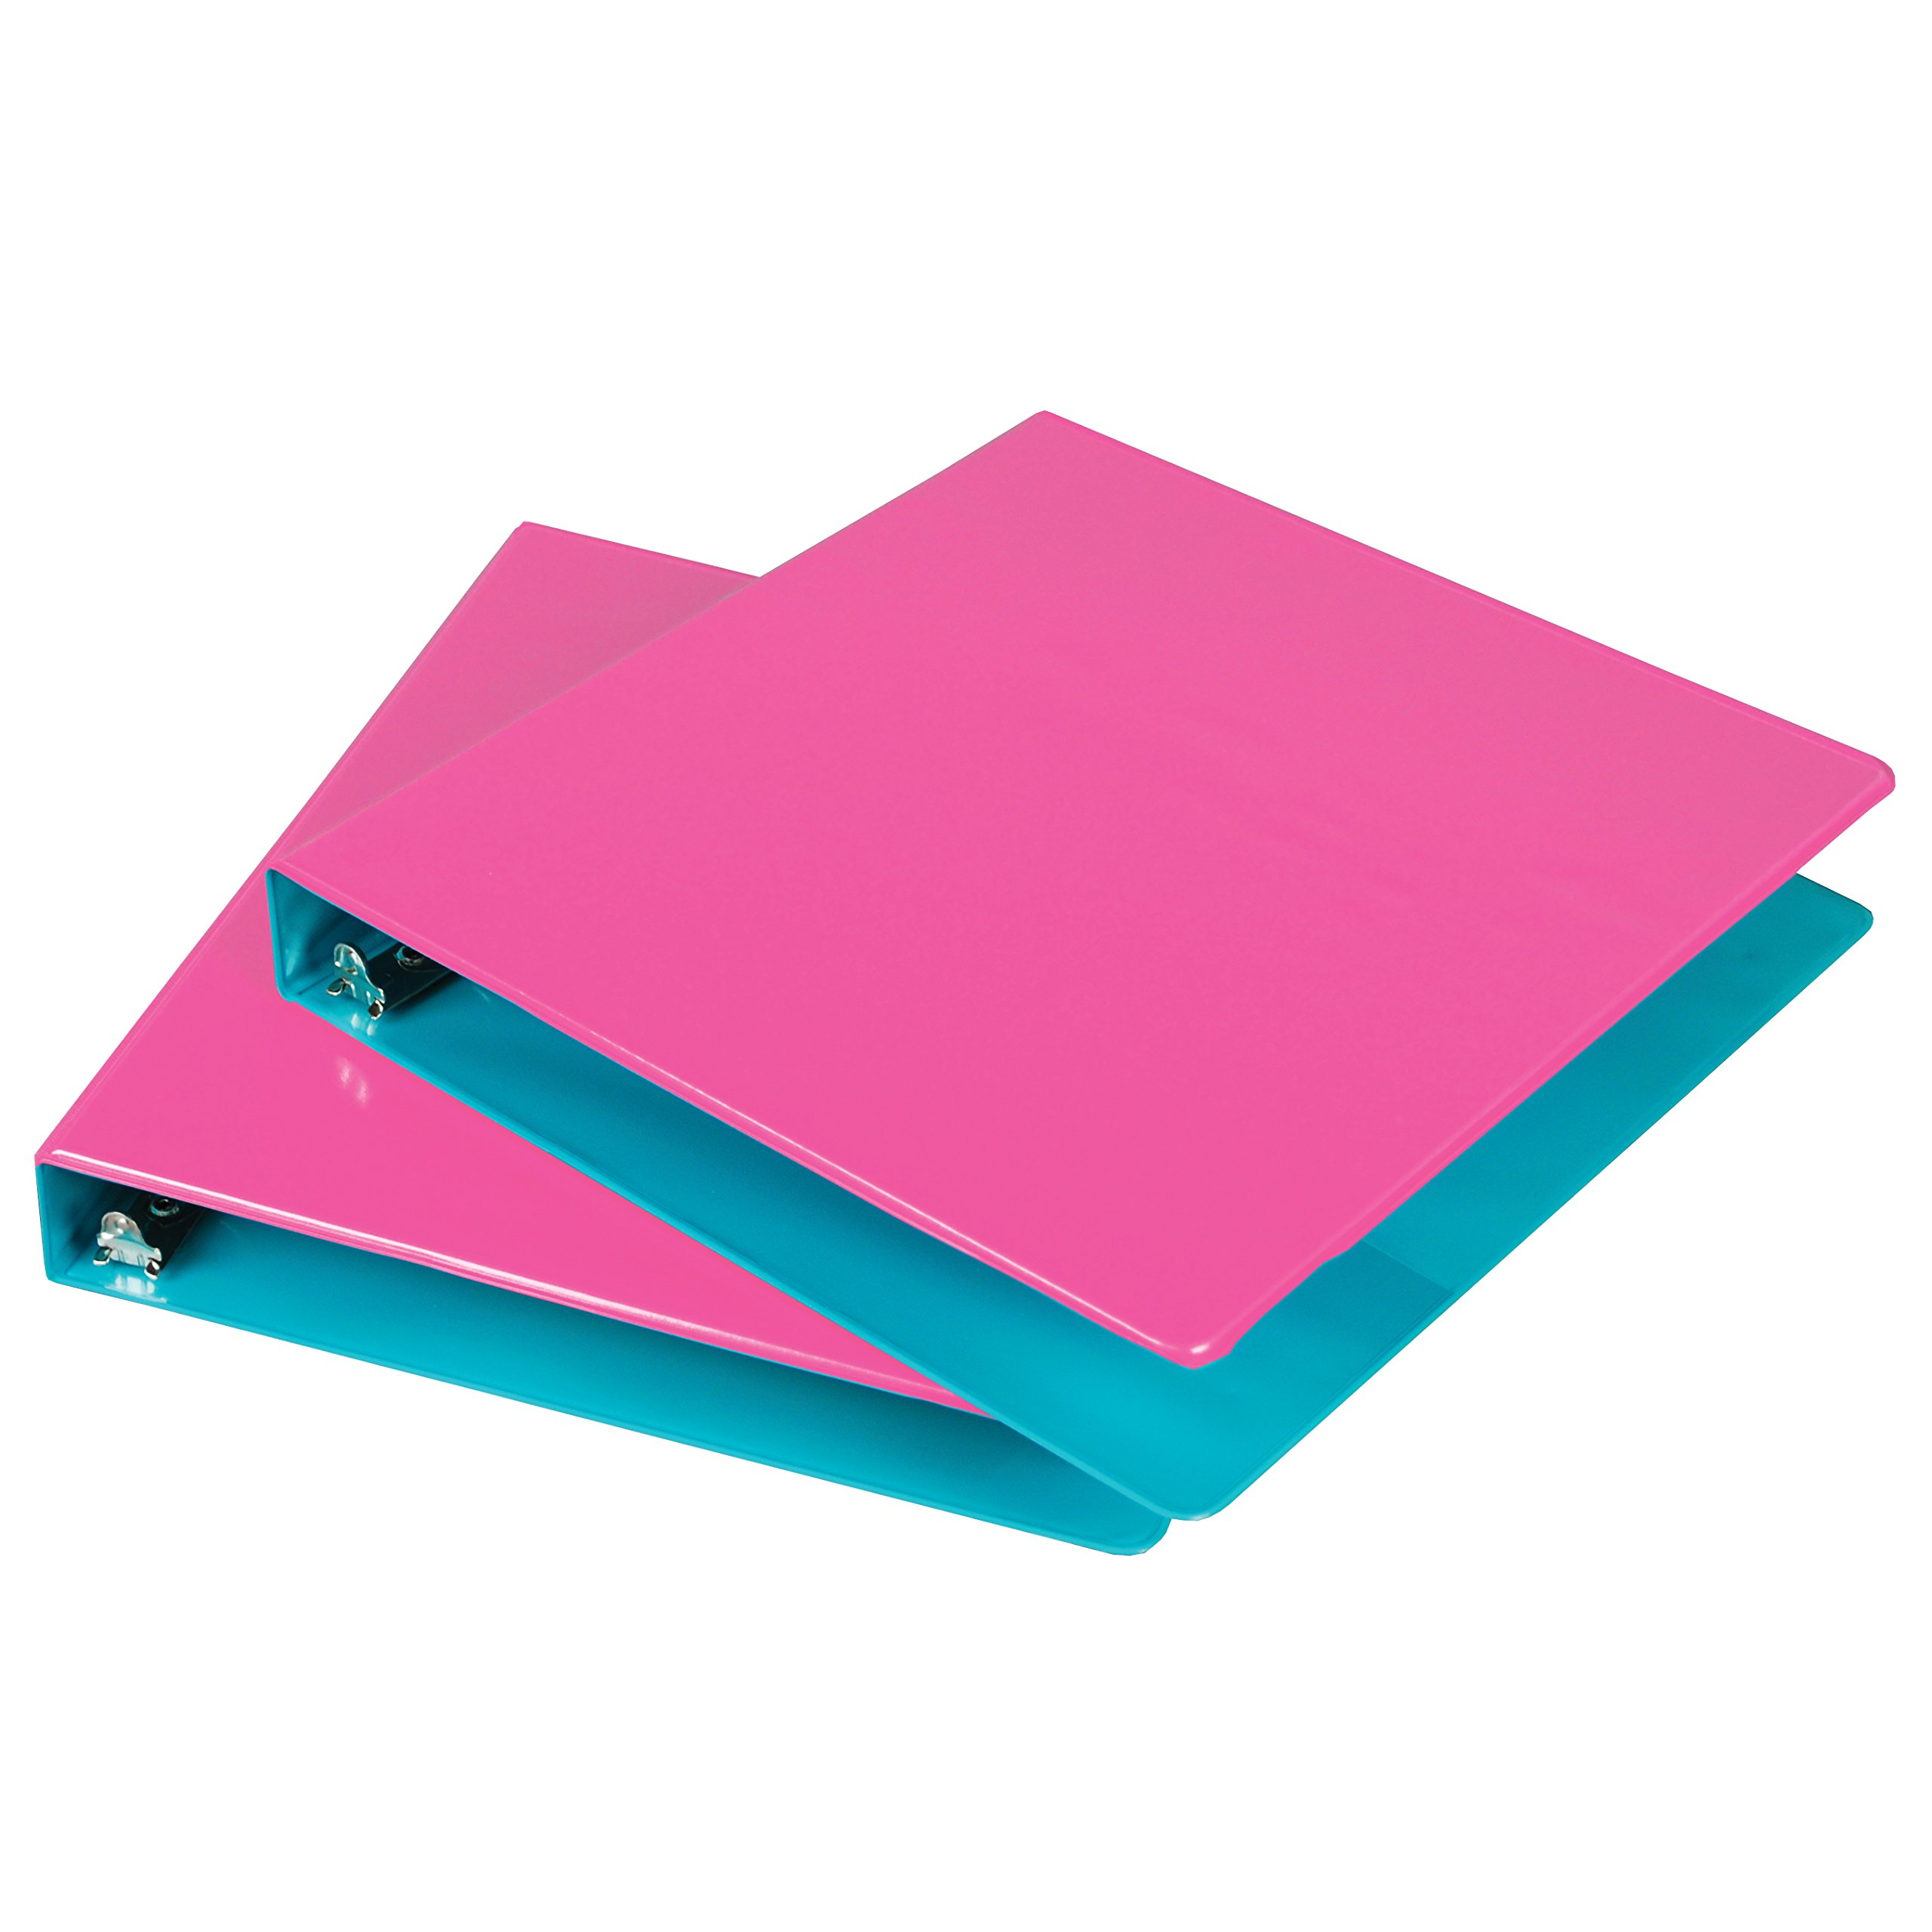 Samsill 1-Inch 2-Tone View Binder, Berry/Turquoise, Pack of 2 (U38947)